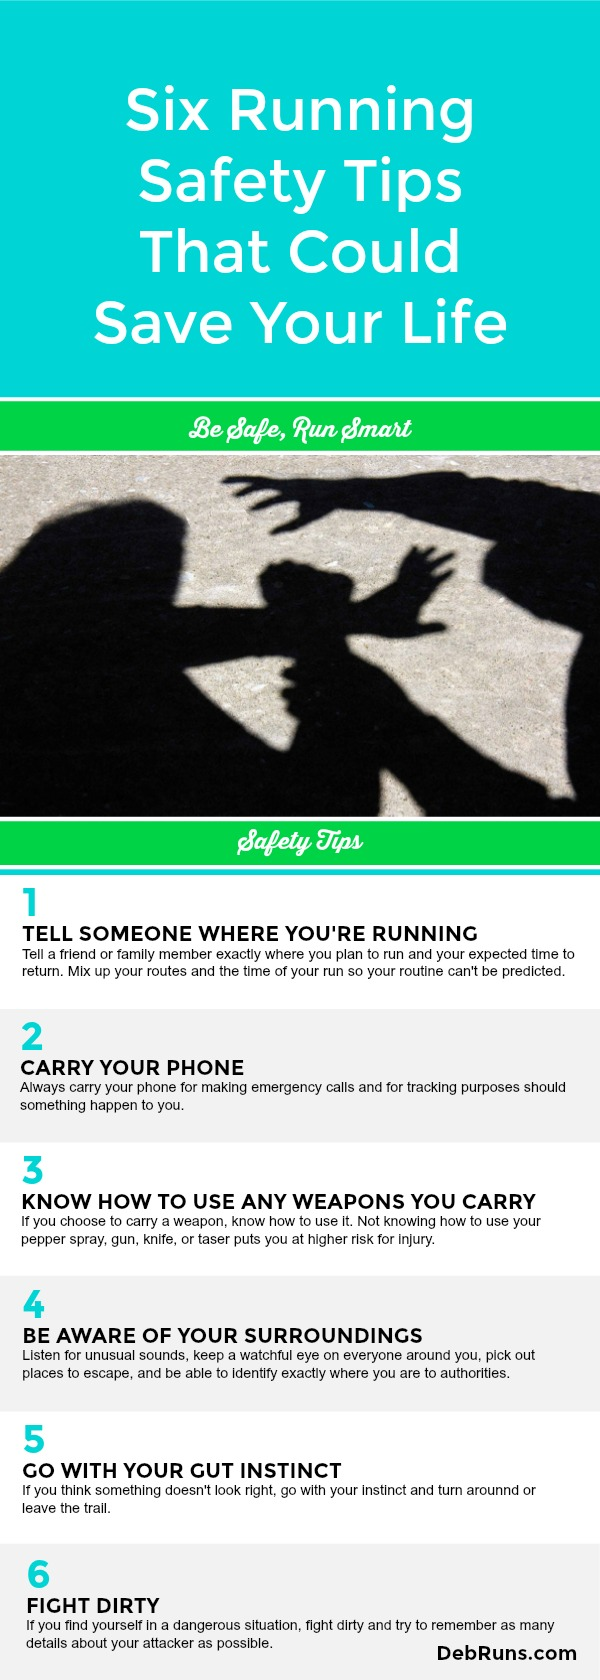 Six Running Safety Tips That Could Save Your Life